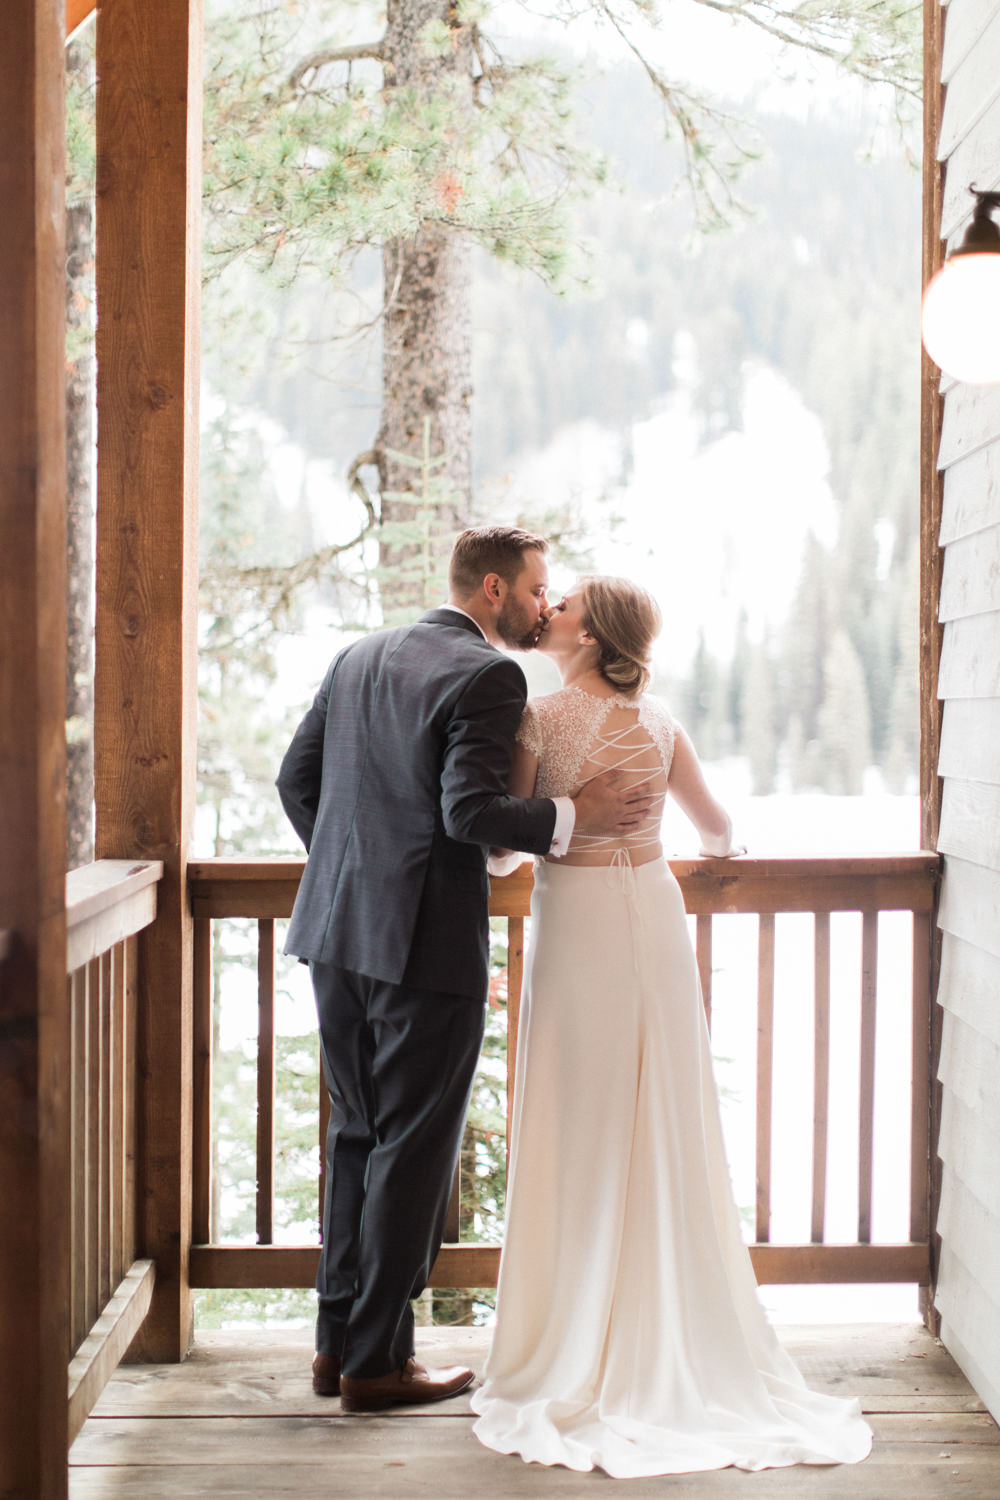 Matt-and-Jennas-Emerald-Lake-winter-wedding-18.jpg